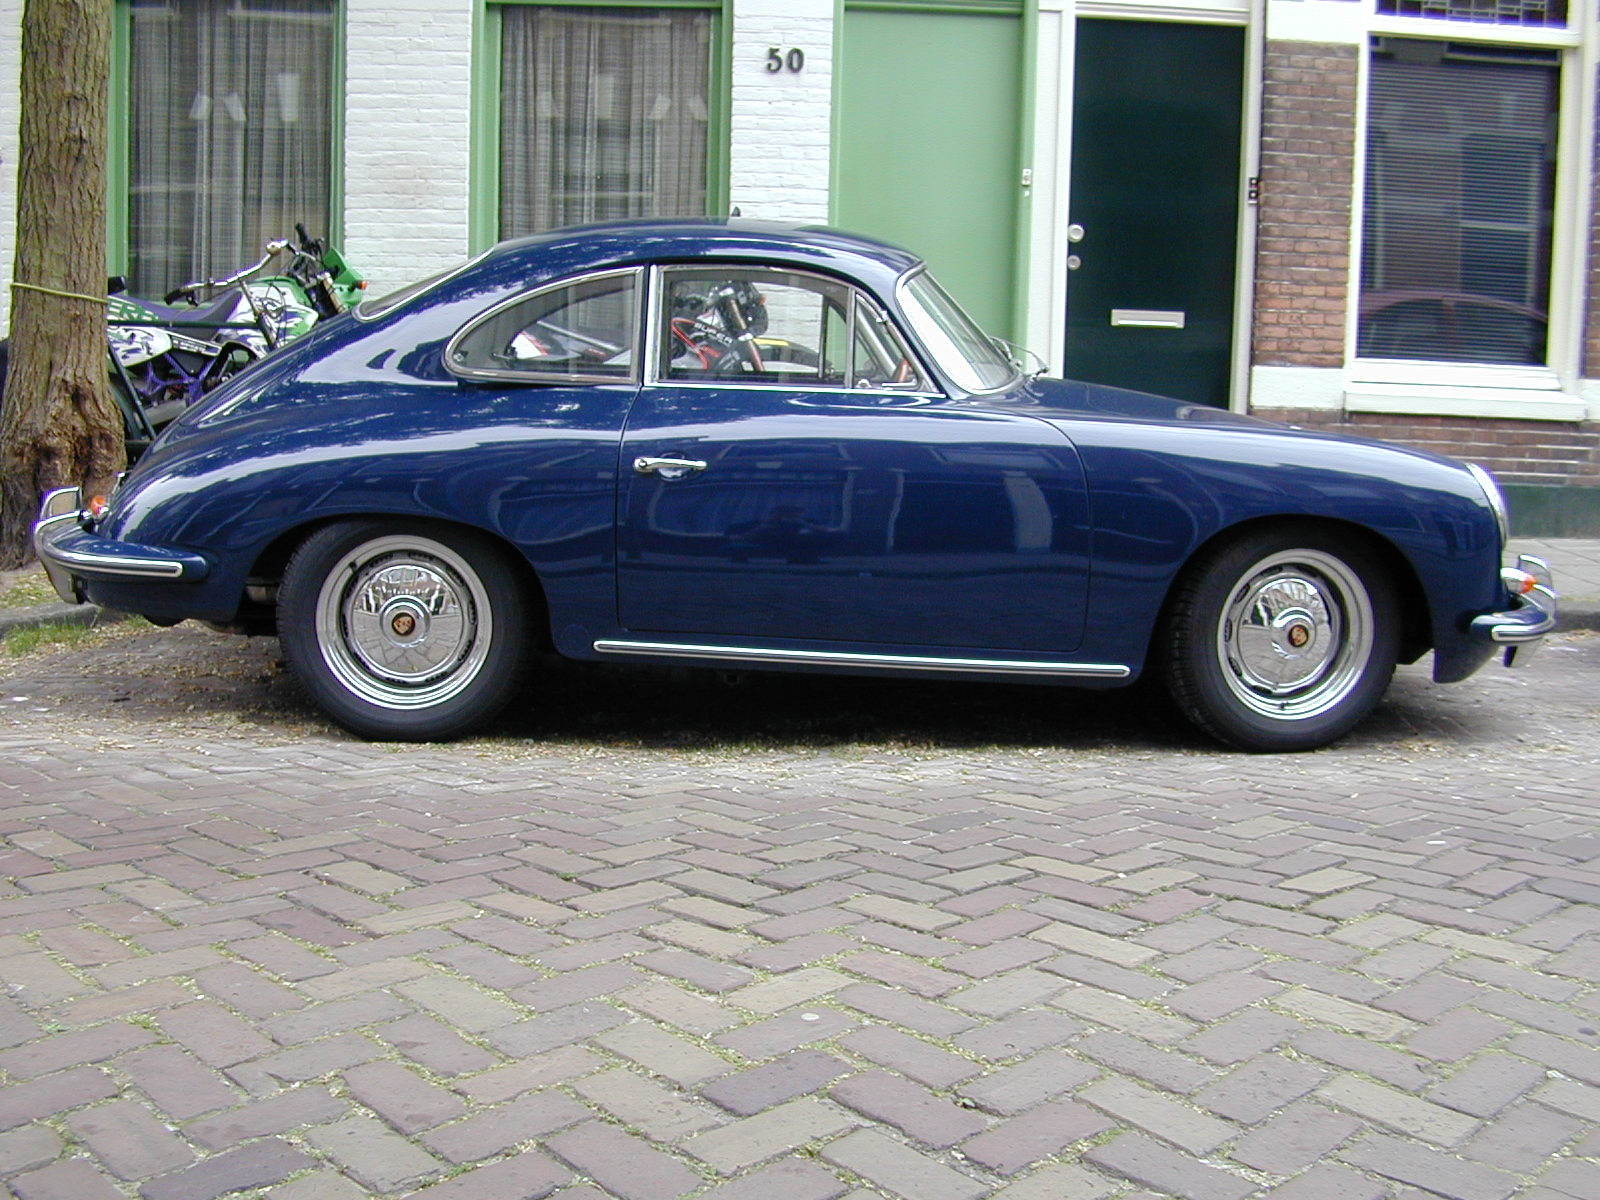 Image After Images Vehicles Land Porsche Oldtimer Side Blue